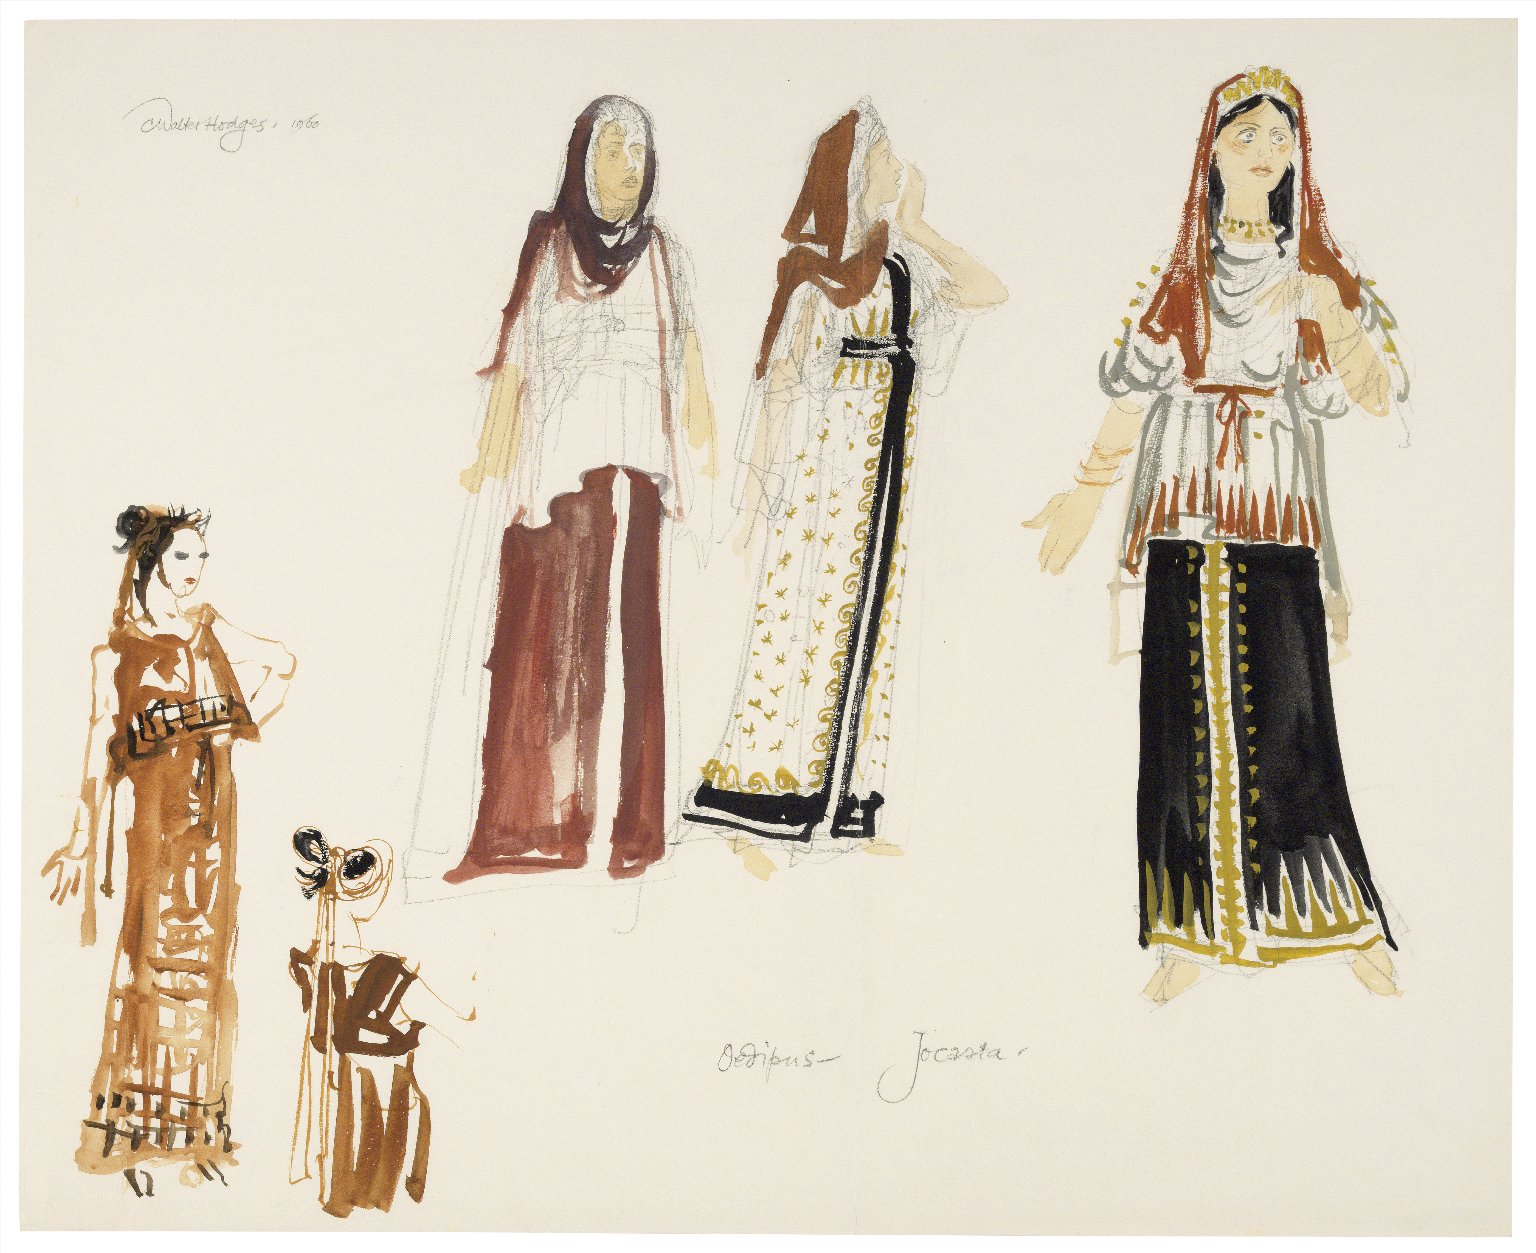 Oedipus Rex, costume drawings for Jocasta